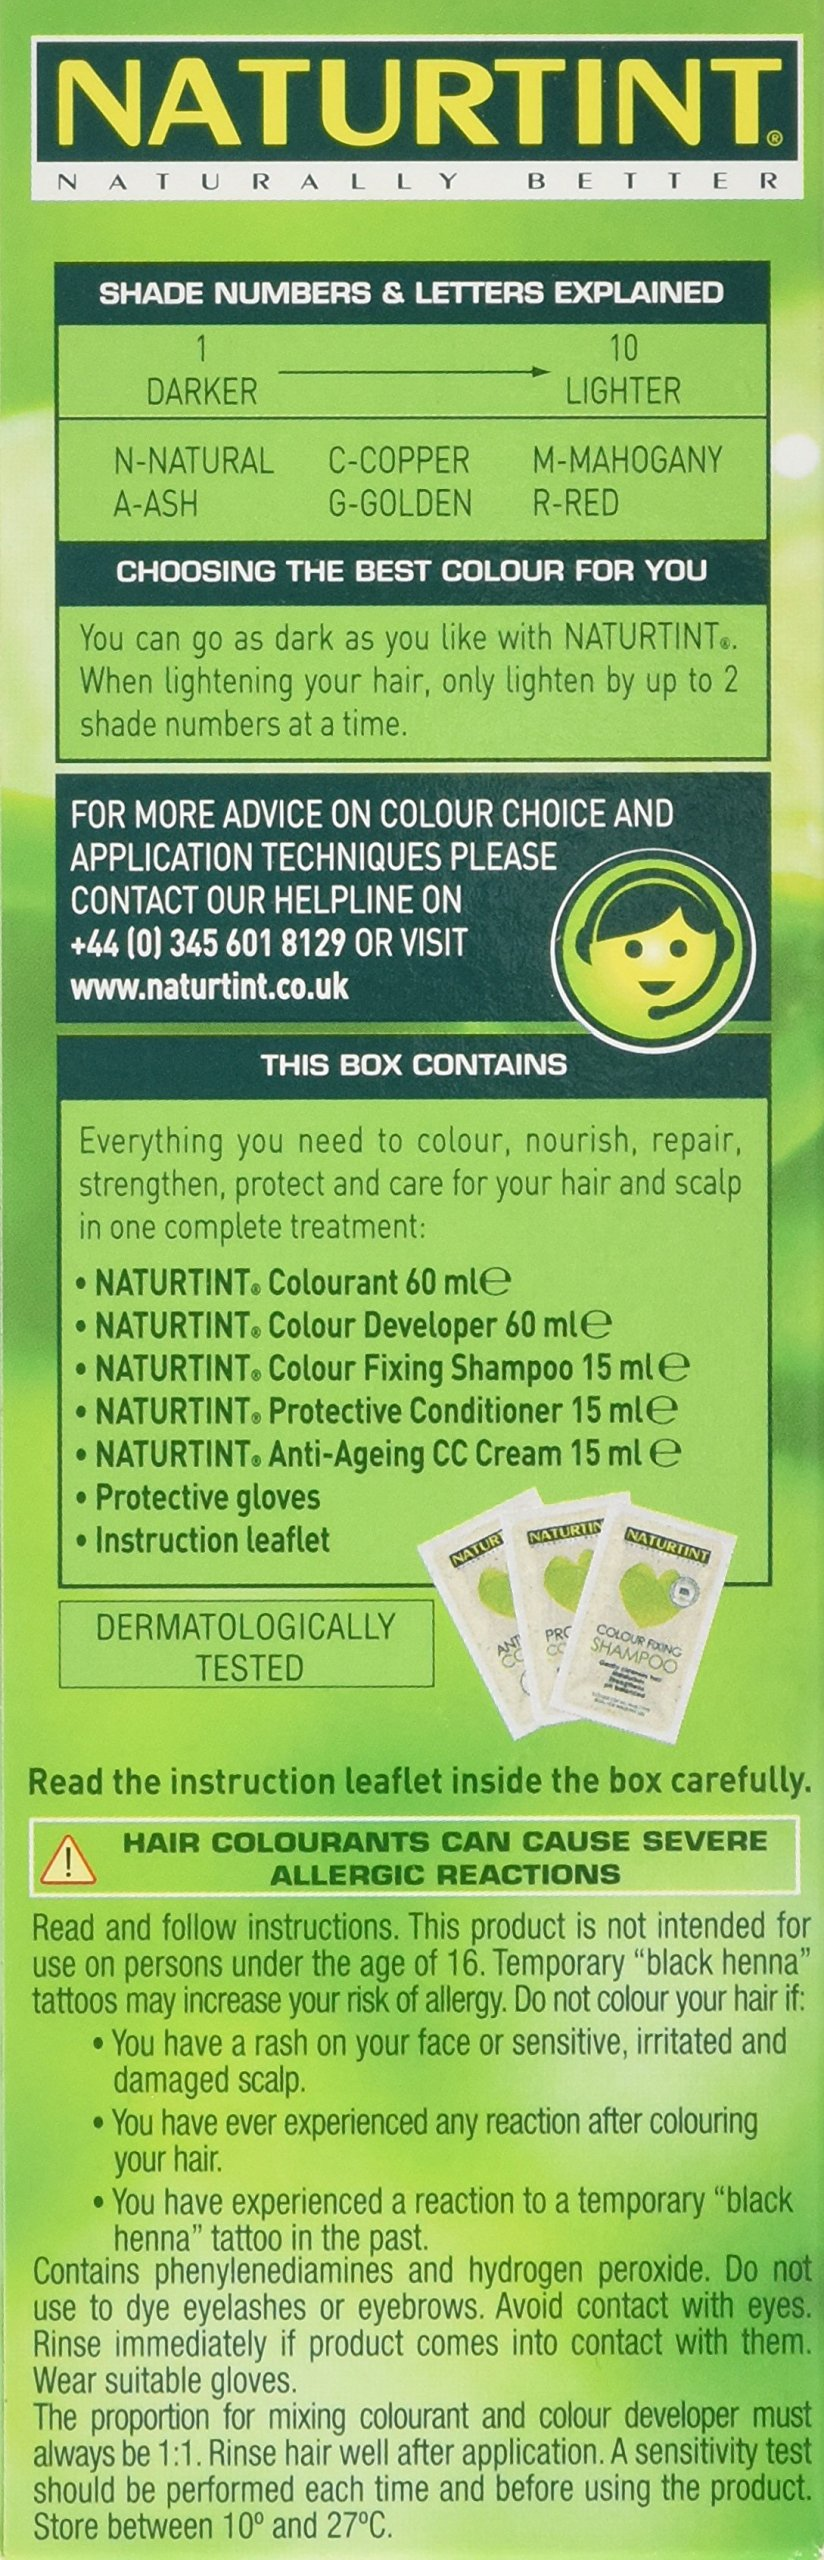 Naturtint Permanent Hair Colorant 5N Light Chestnut Brown -- 5.28 fl oz by Naturtint (Image #5)